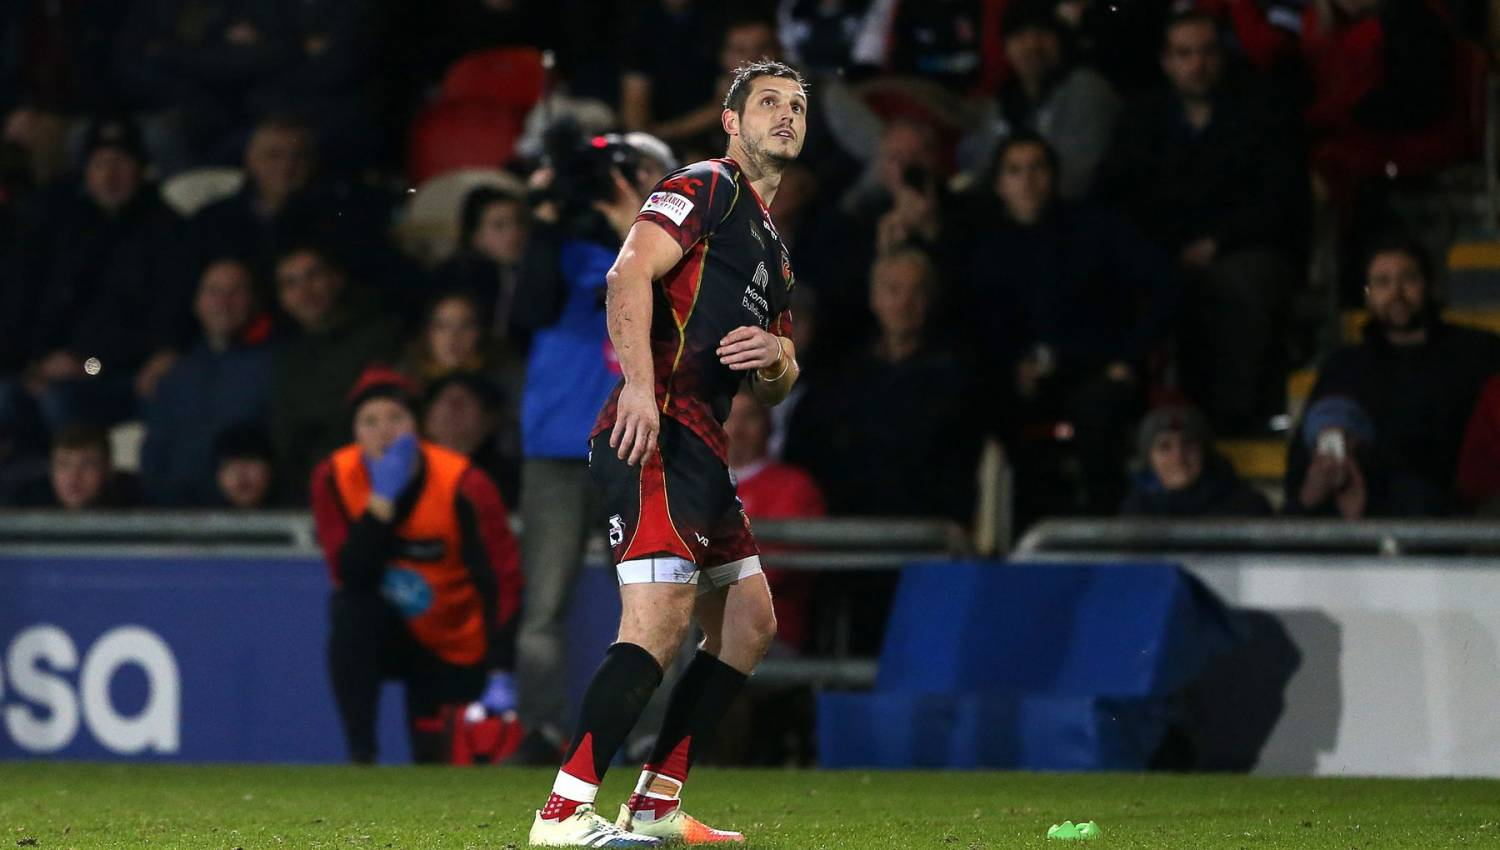 Tovey returns to Cardiff Blues